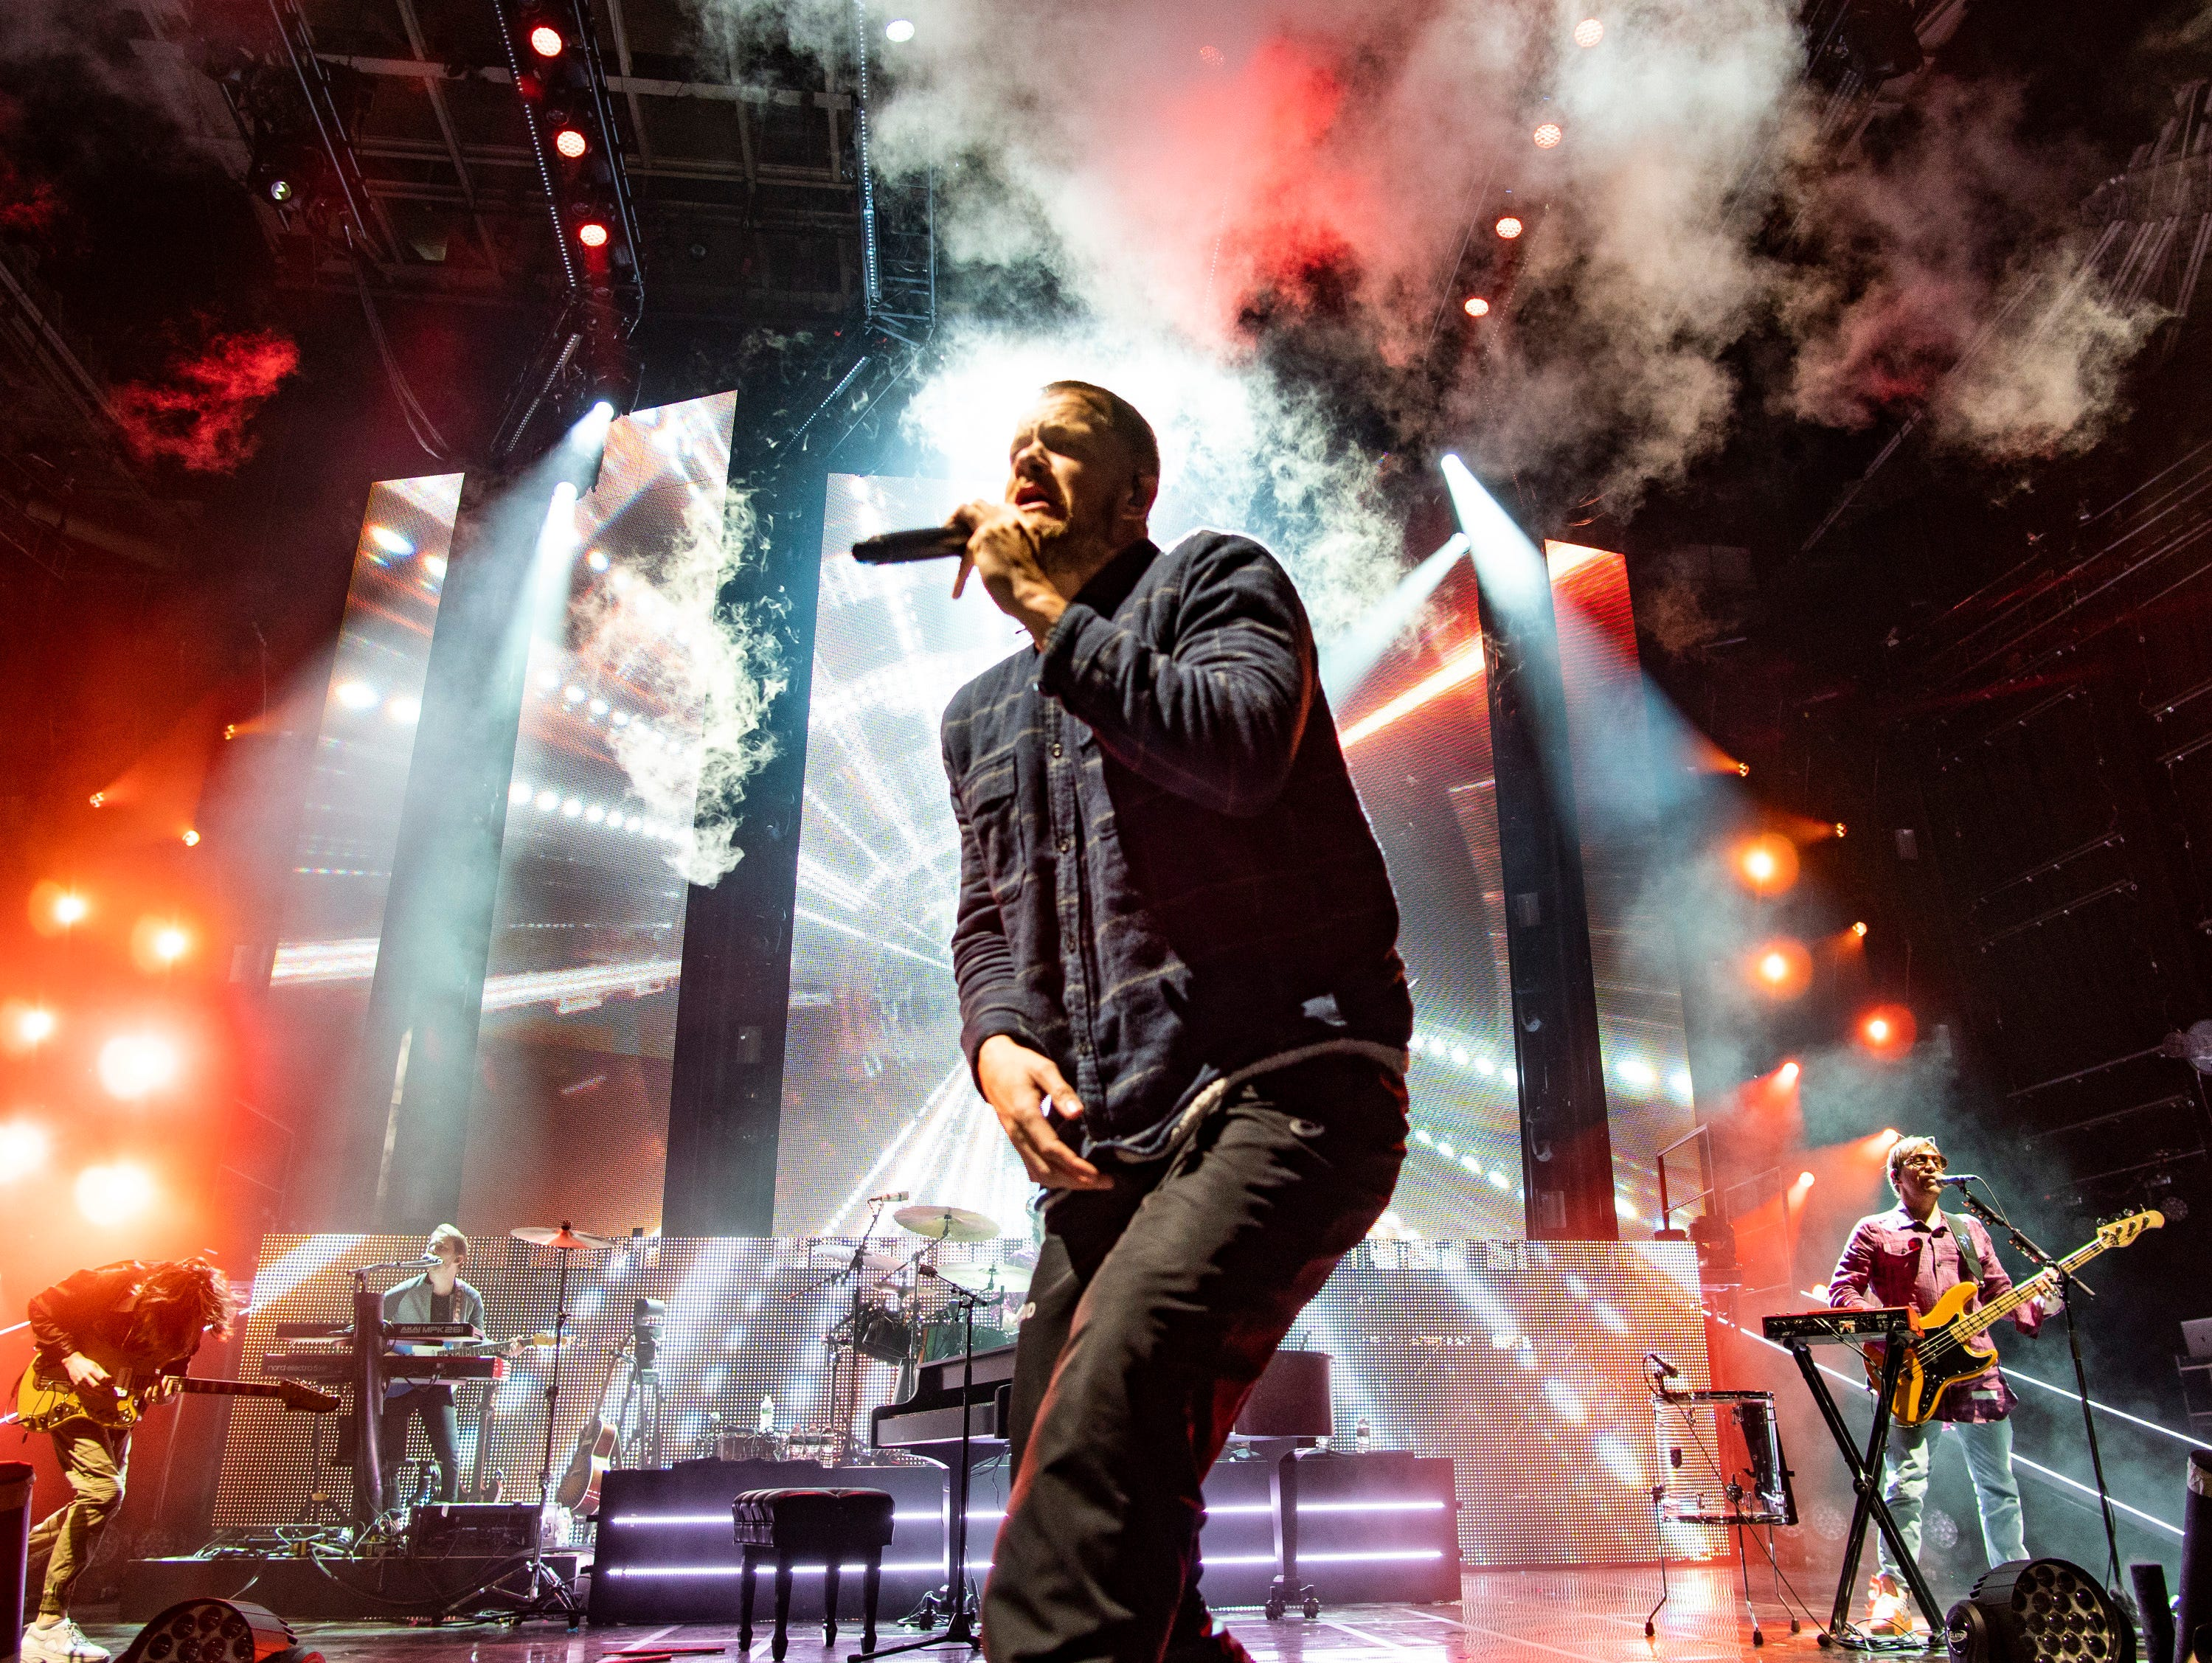 The American pop rock band Imagine Dragons with lead vocalist Dan Reynolds performs at the Xfinity Center, Wednesday, June 6, 2018, in Mansfield, Mass. (Photo by Robert E. Klein/Invision/AP) ORG XMIT: REK105